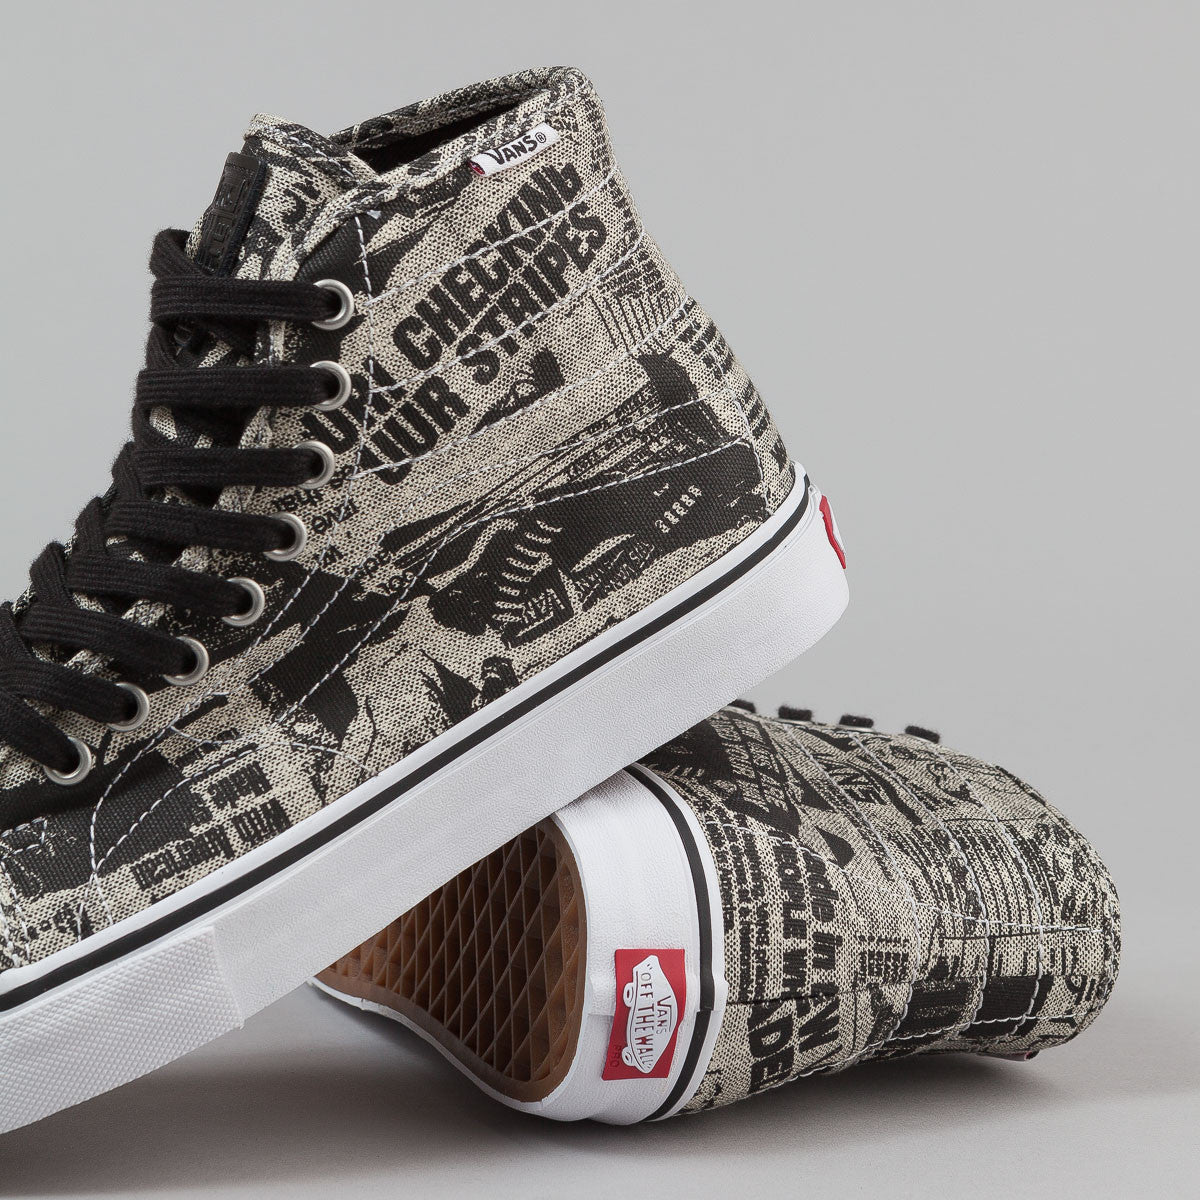 Vans AV Classic High Shoes (Newsprint) - Black / White